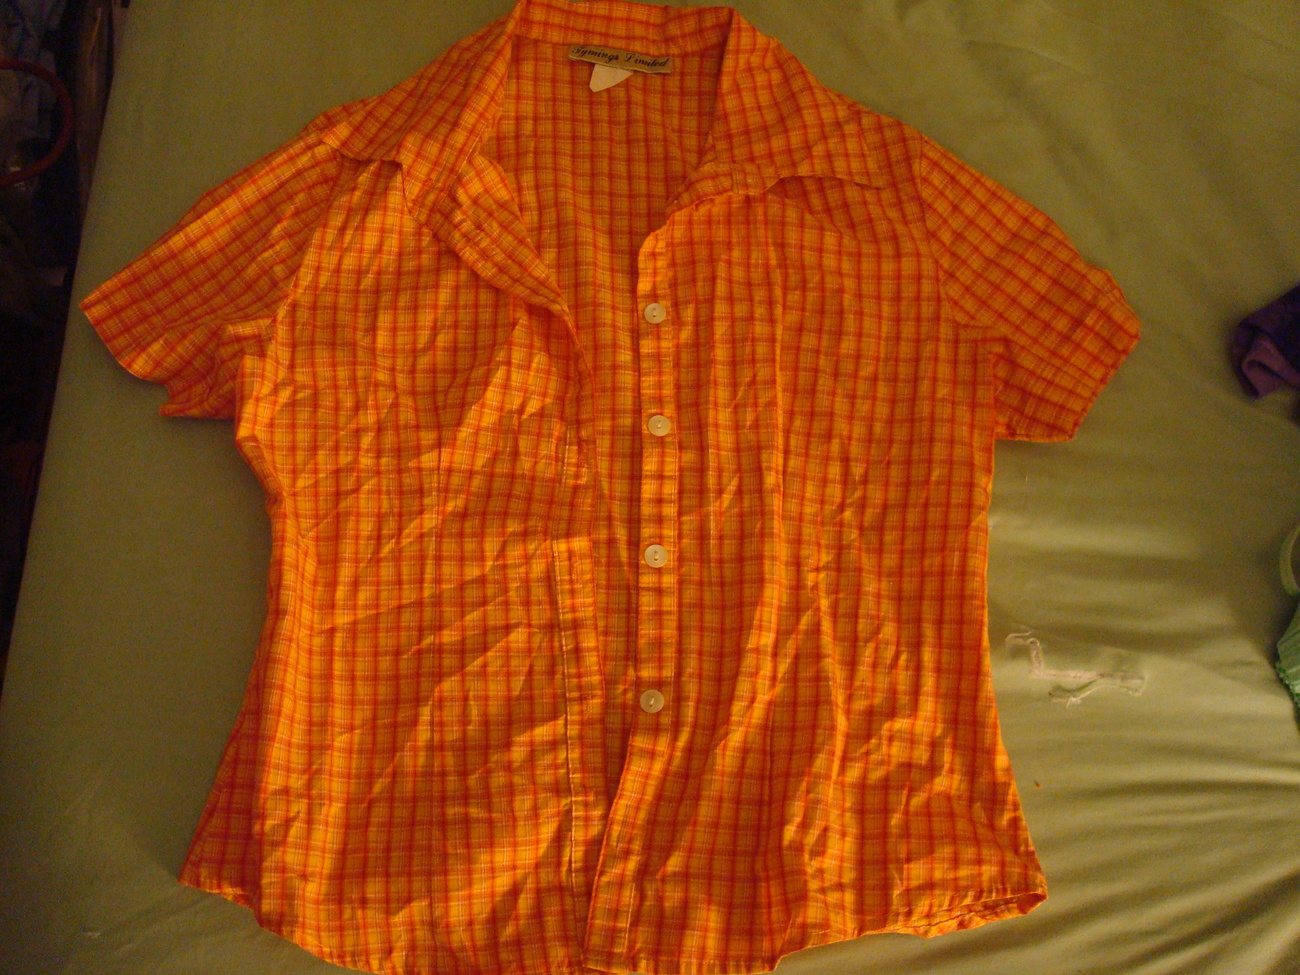 Primary image for Women's Plaid Button-down Shirt, size S